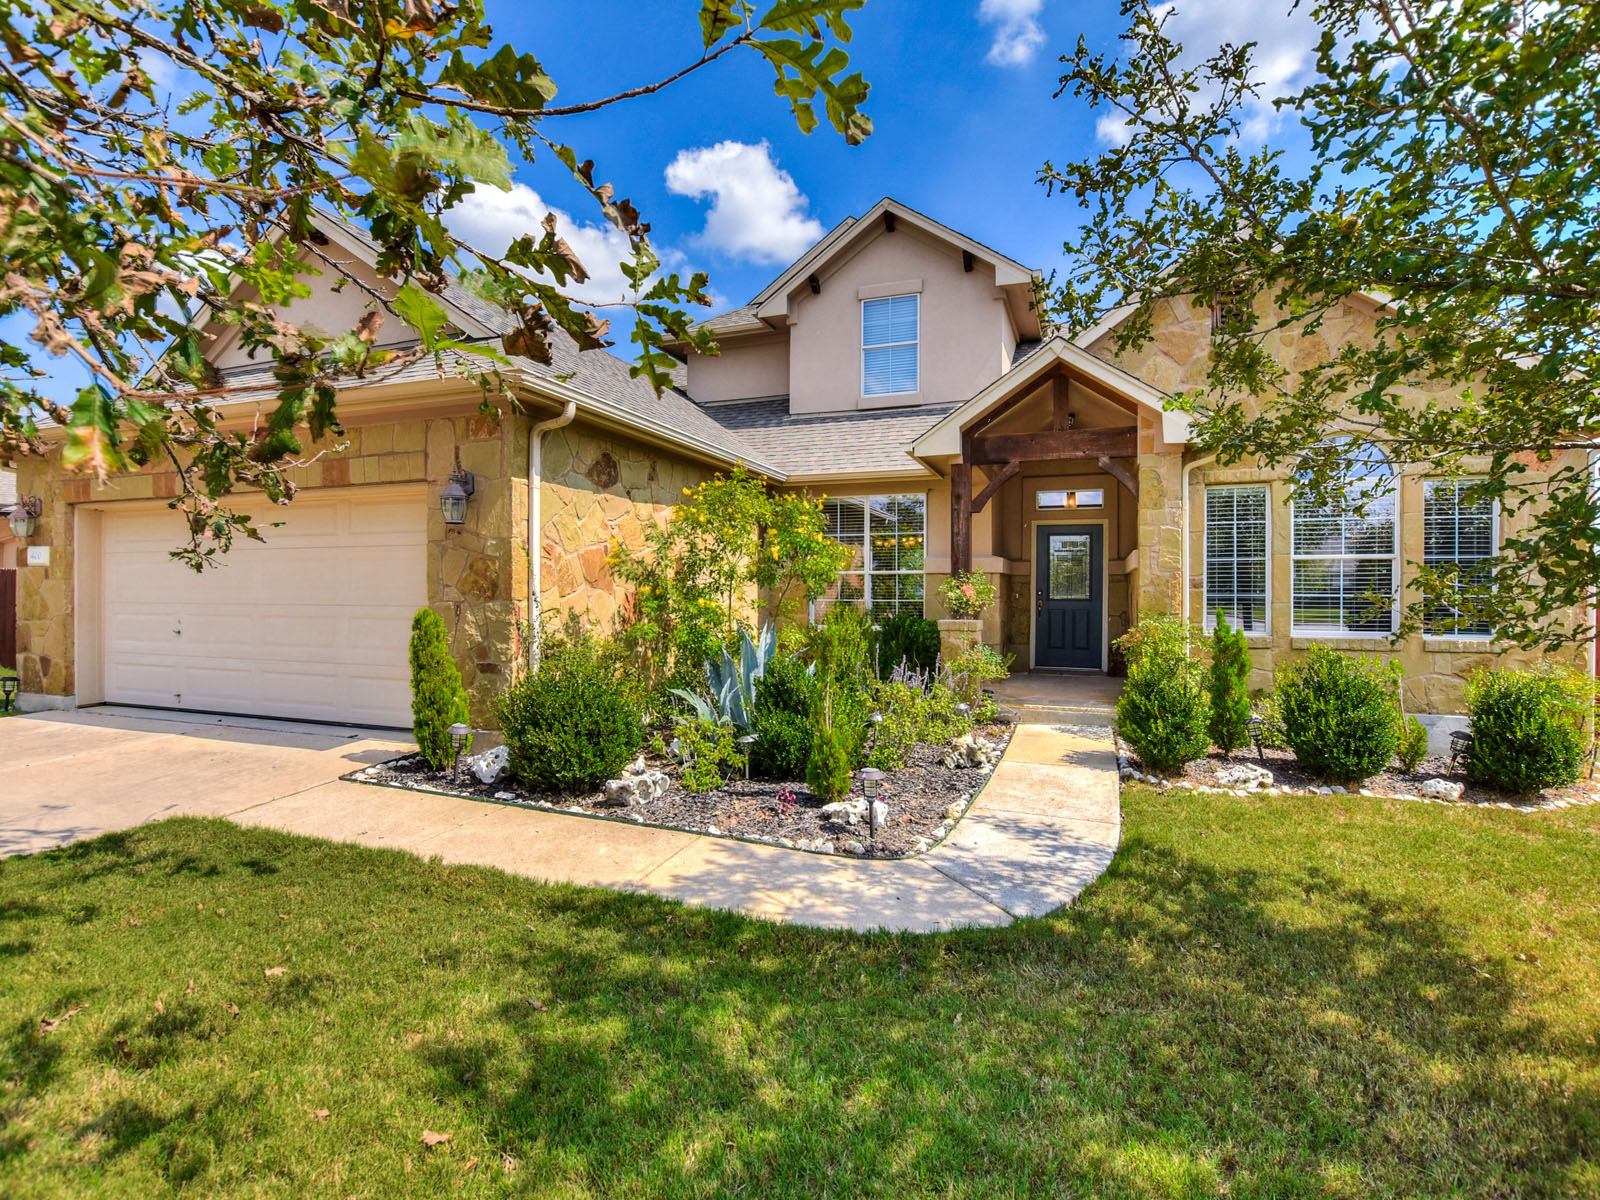 Single Family Home for Sale at Fabulous Home Overlooking Greenbelt 400 Harris Dr Austin, Texas 78737 United States